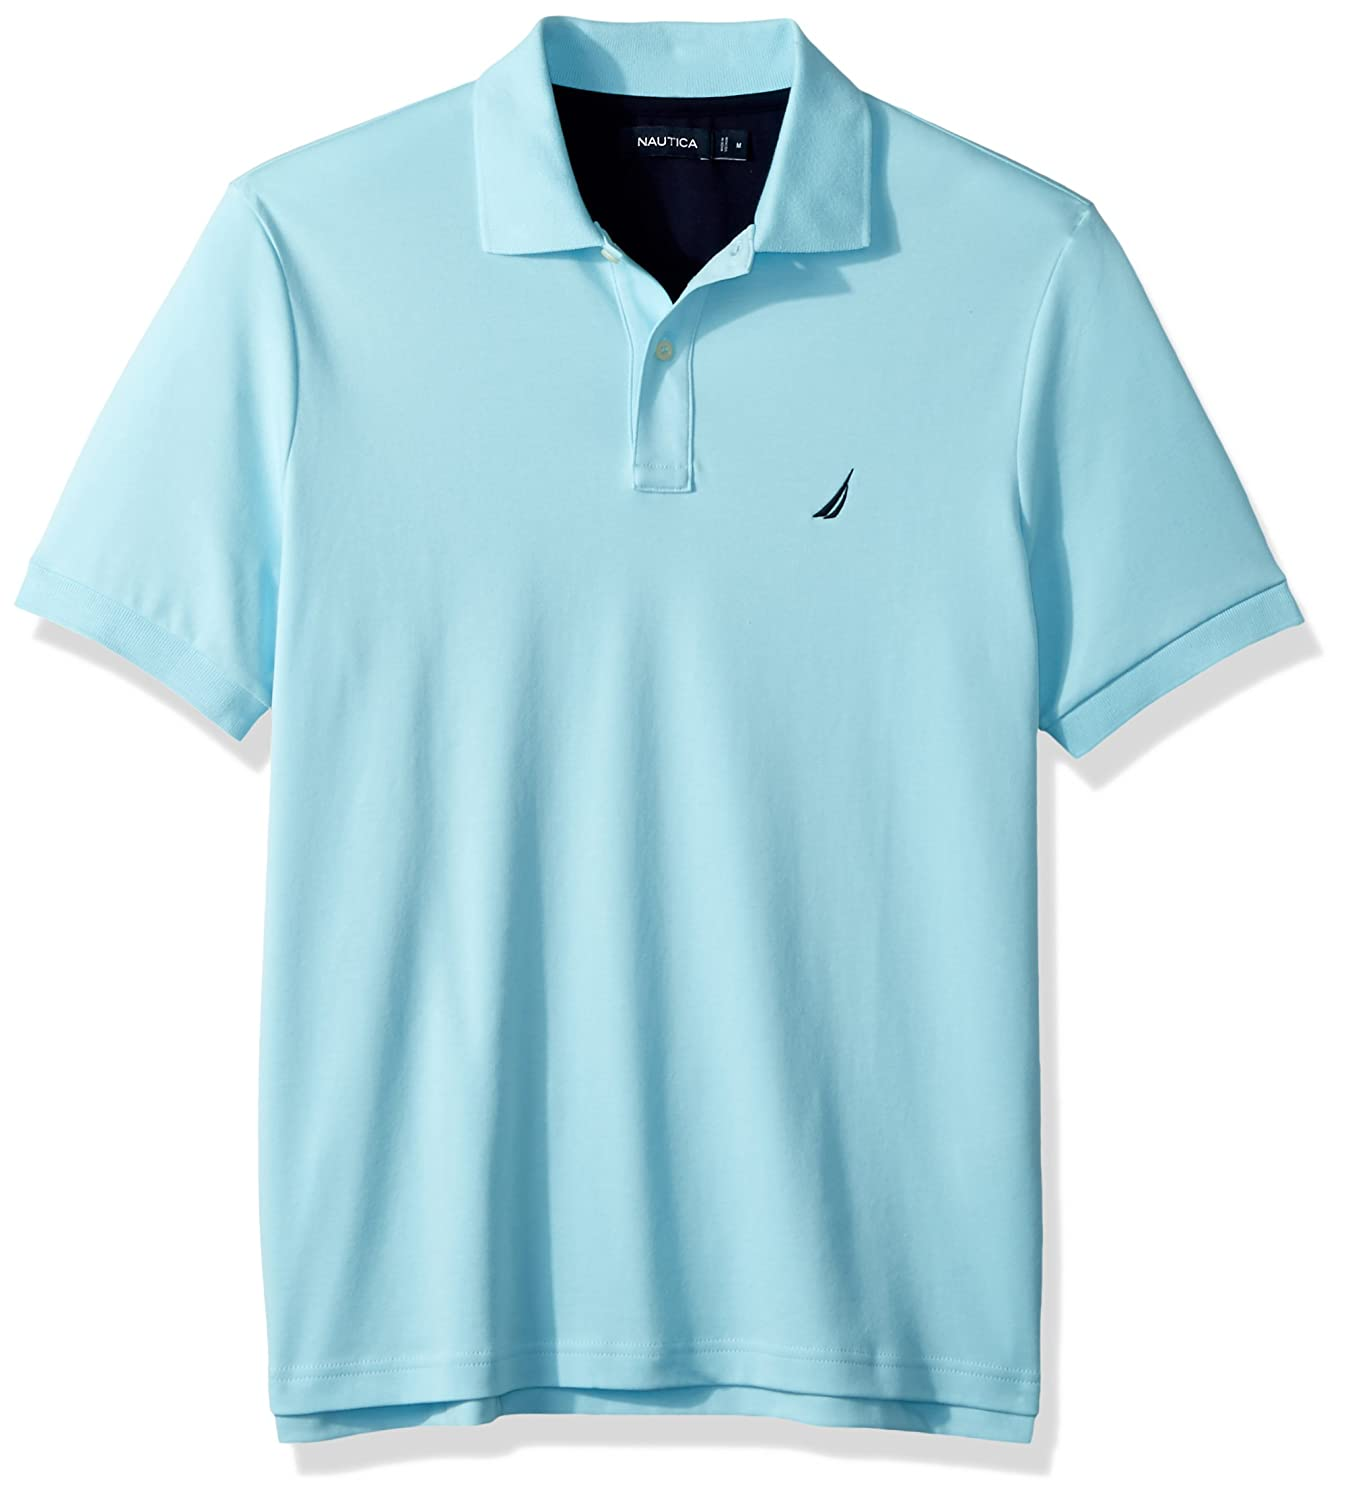 Nautica Mens Standard Classic Fit Short Sleeve Solid Soft Cotton Polo Shirt K82850